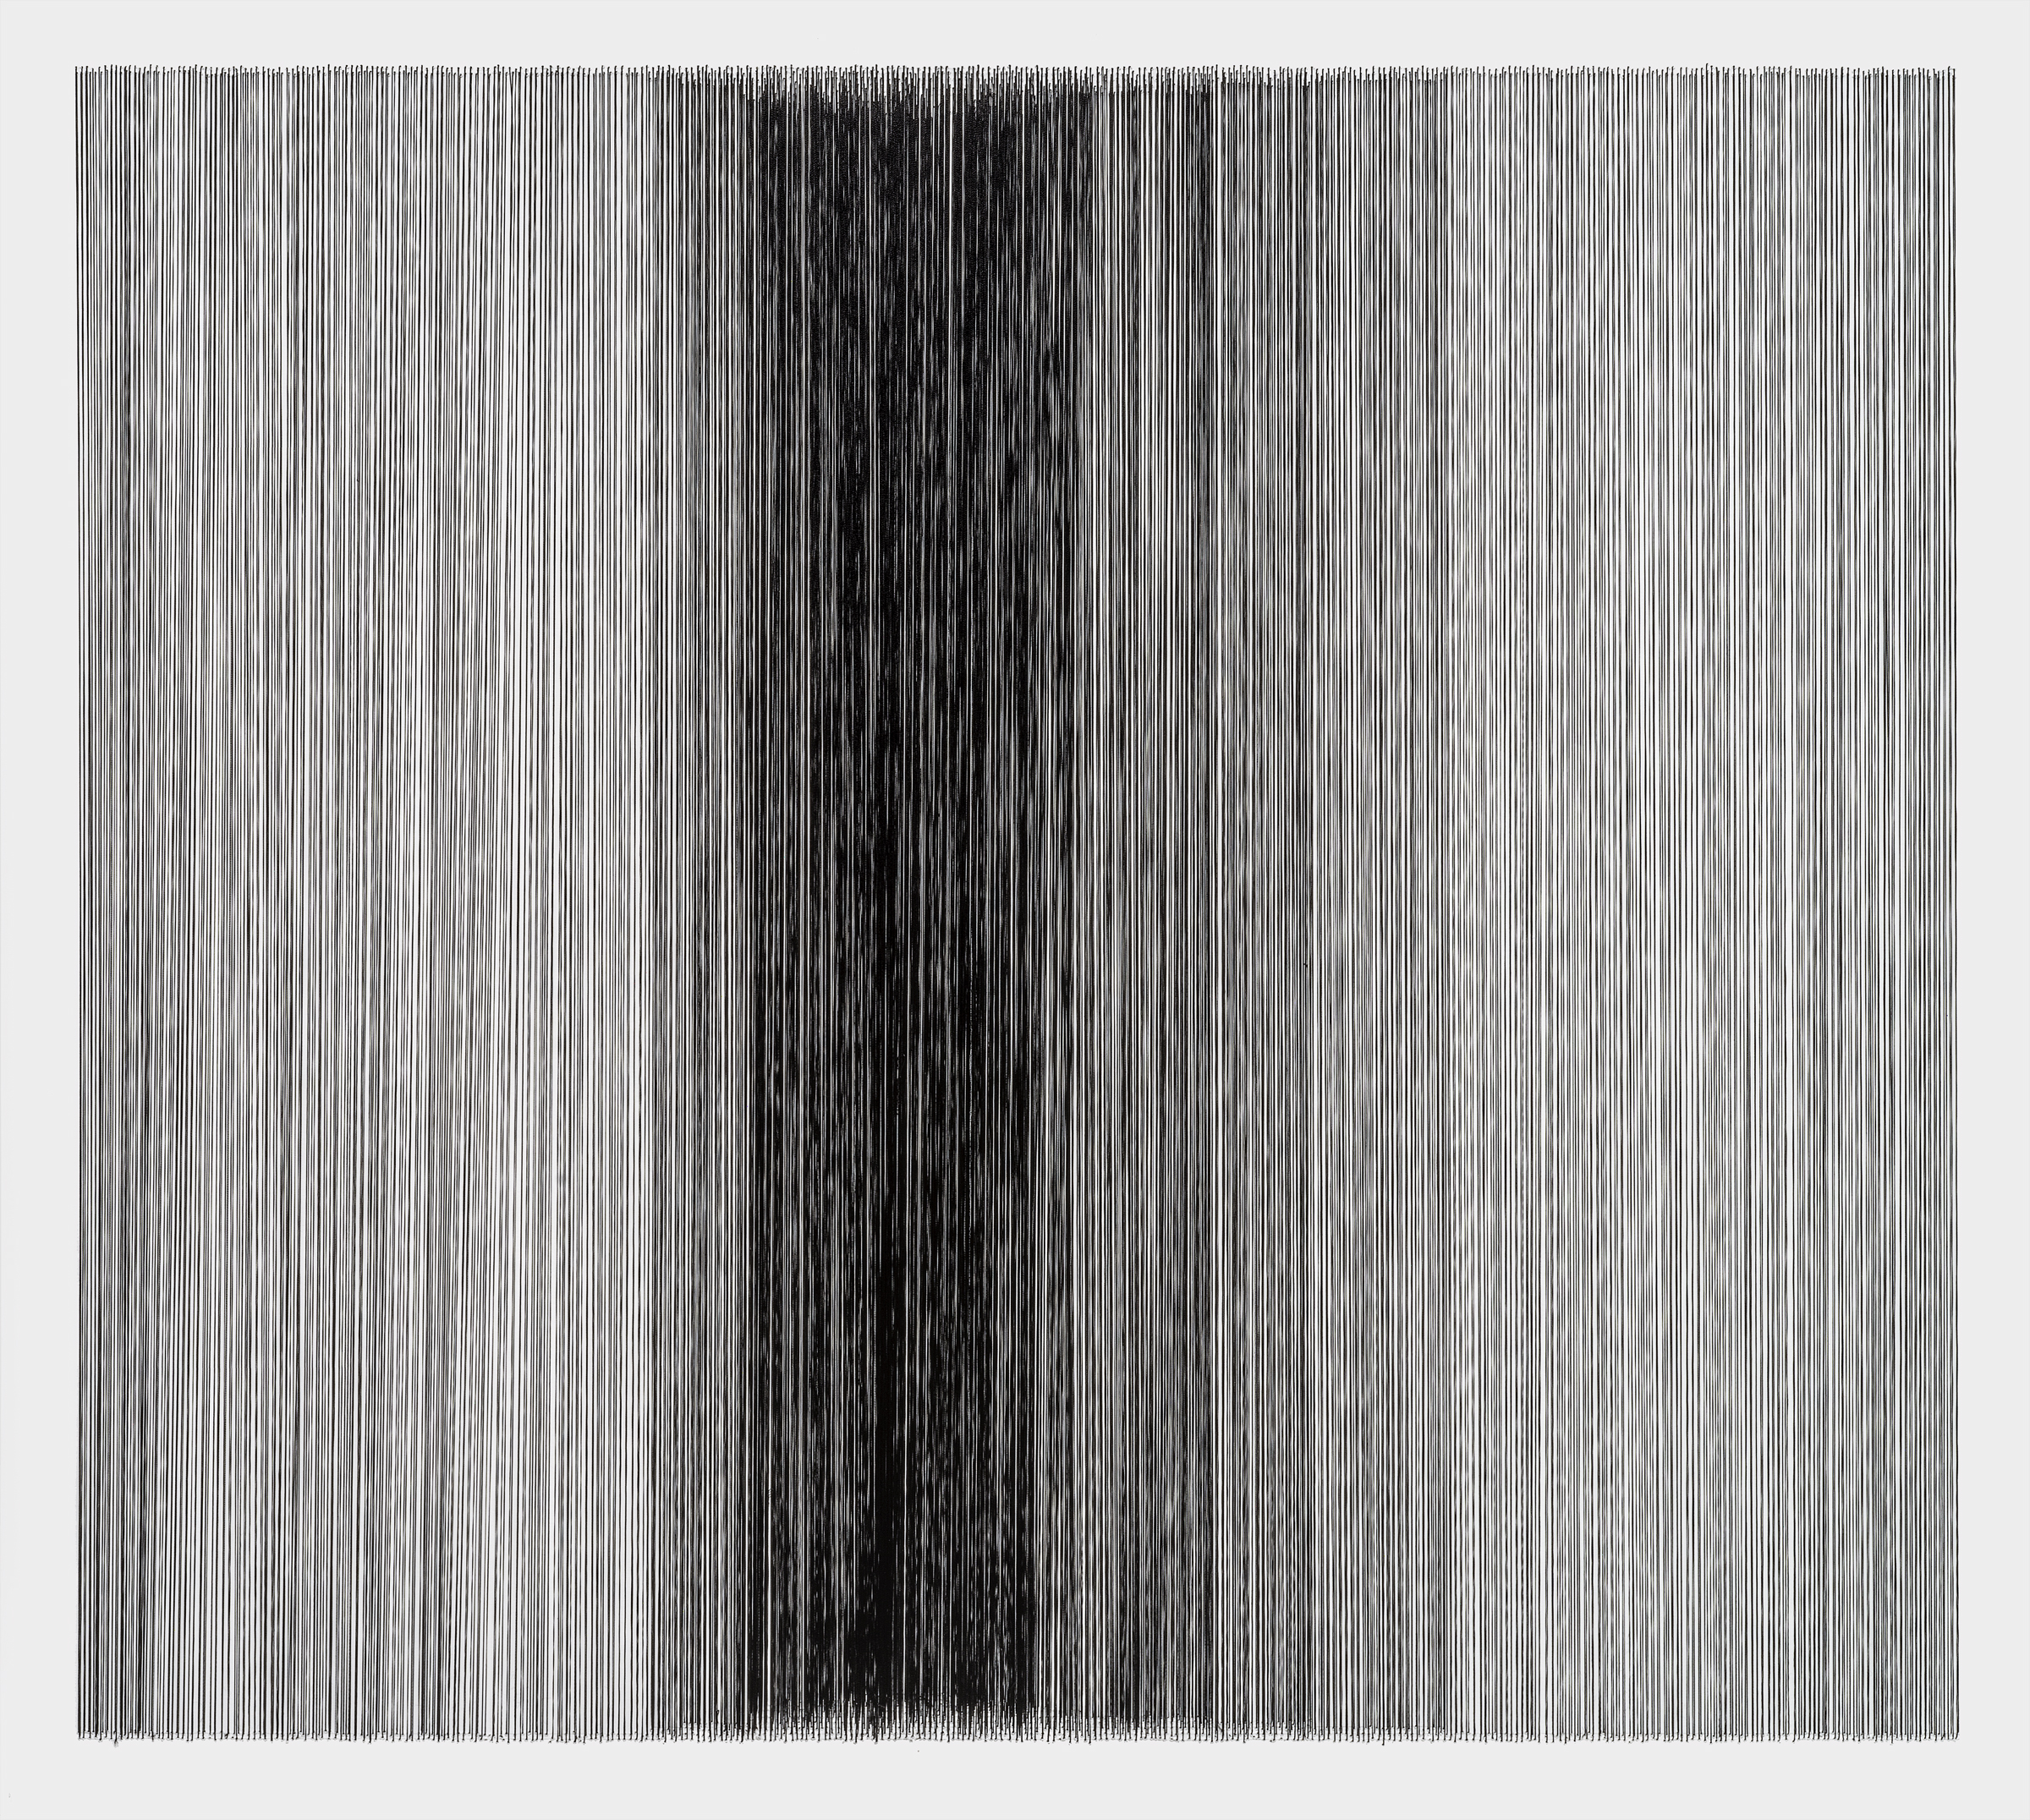 thread drawing 20  2013 rayon thread 31 by 28 inches